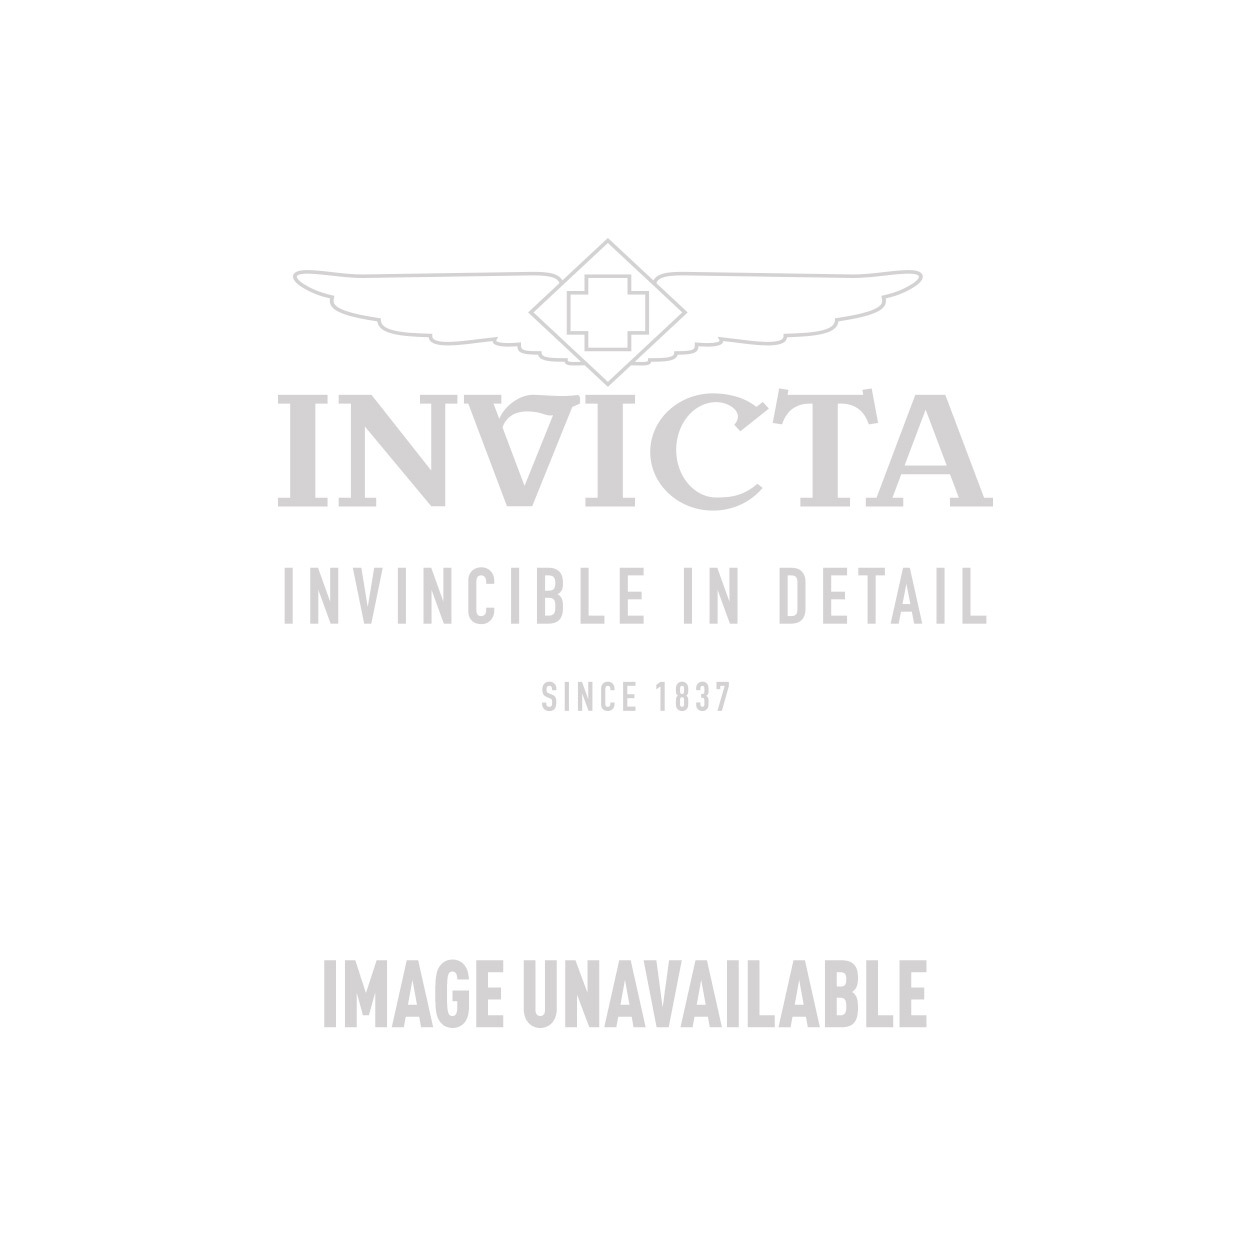 Invicta DNA Swiss Movement Quartz Watch - Stainless Steel case with Black tone Silicone band - Model 10441